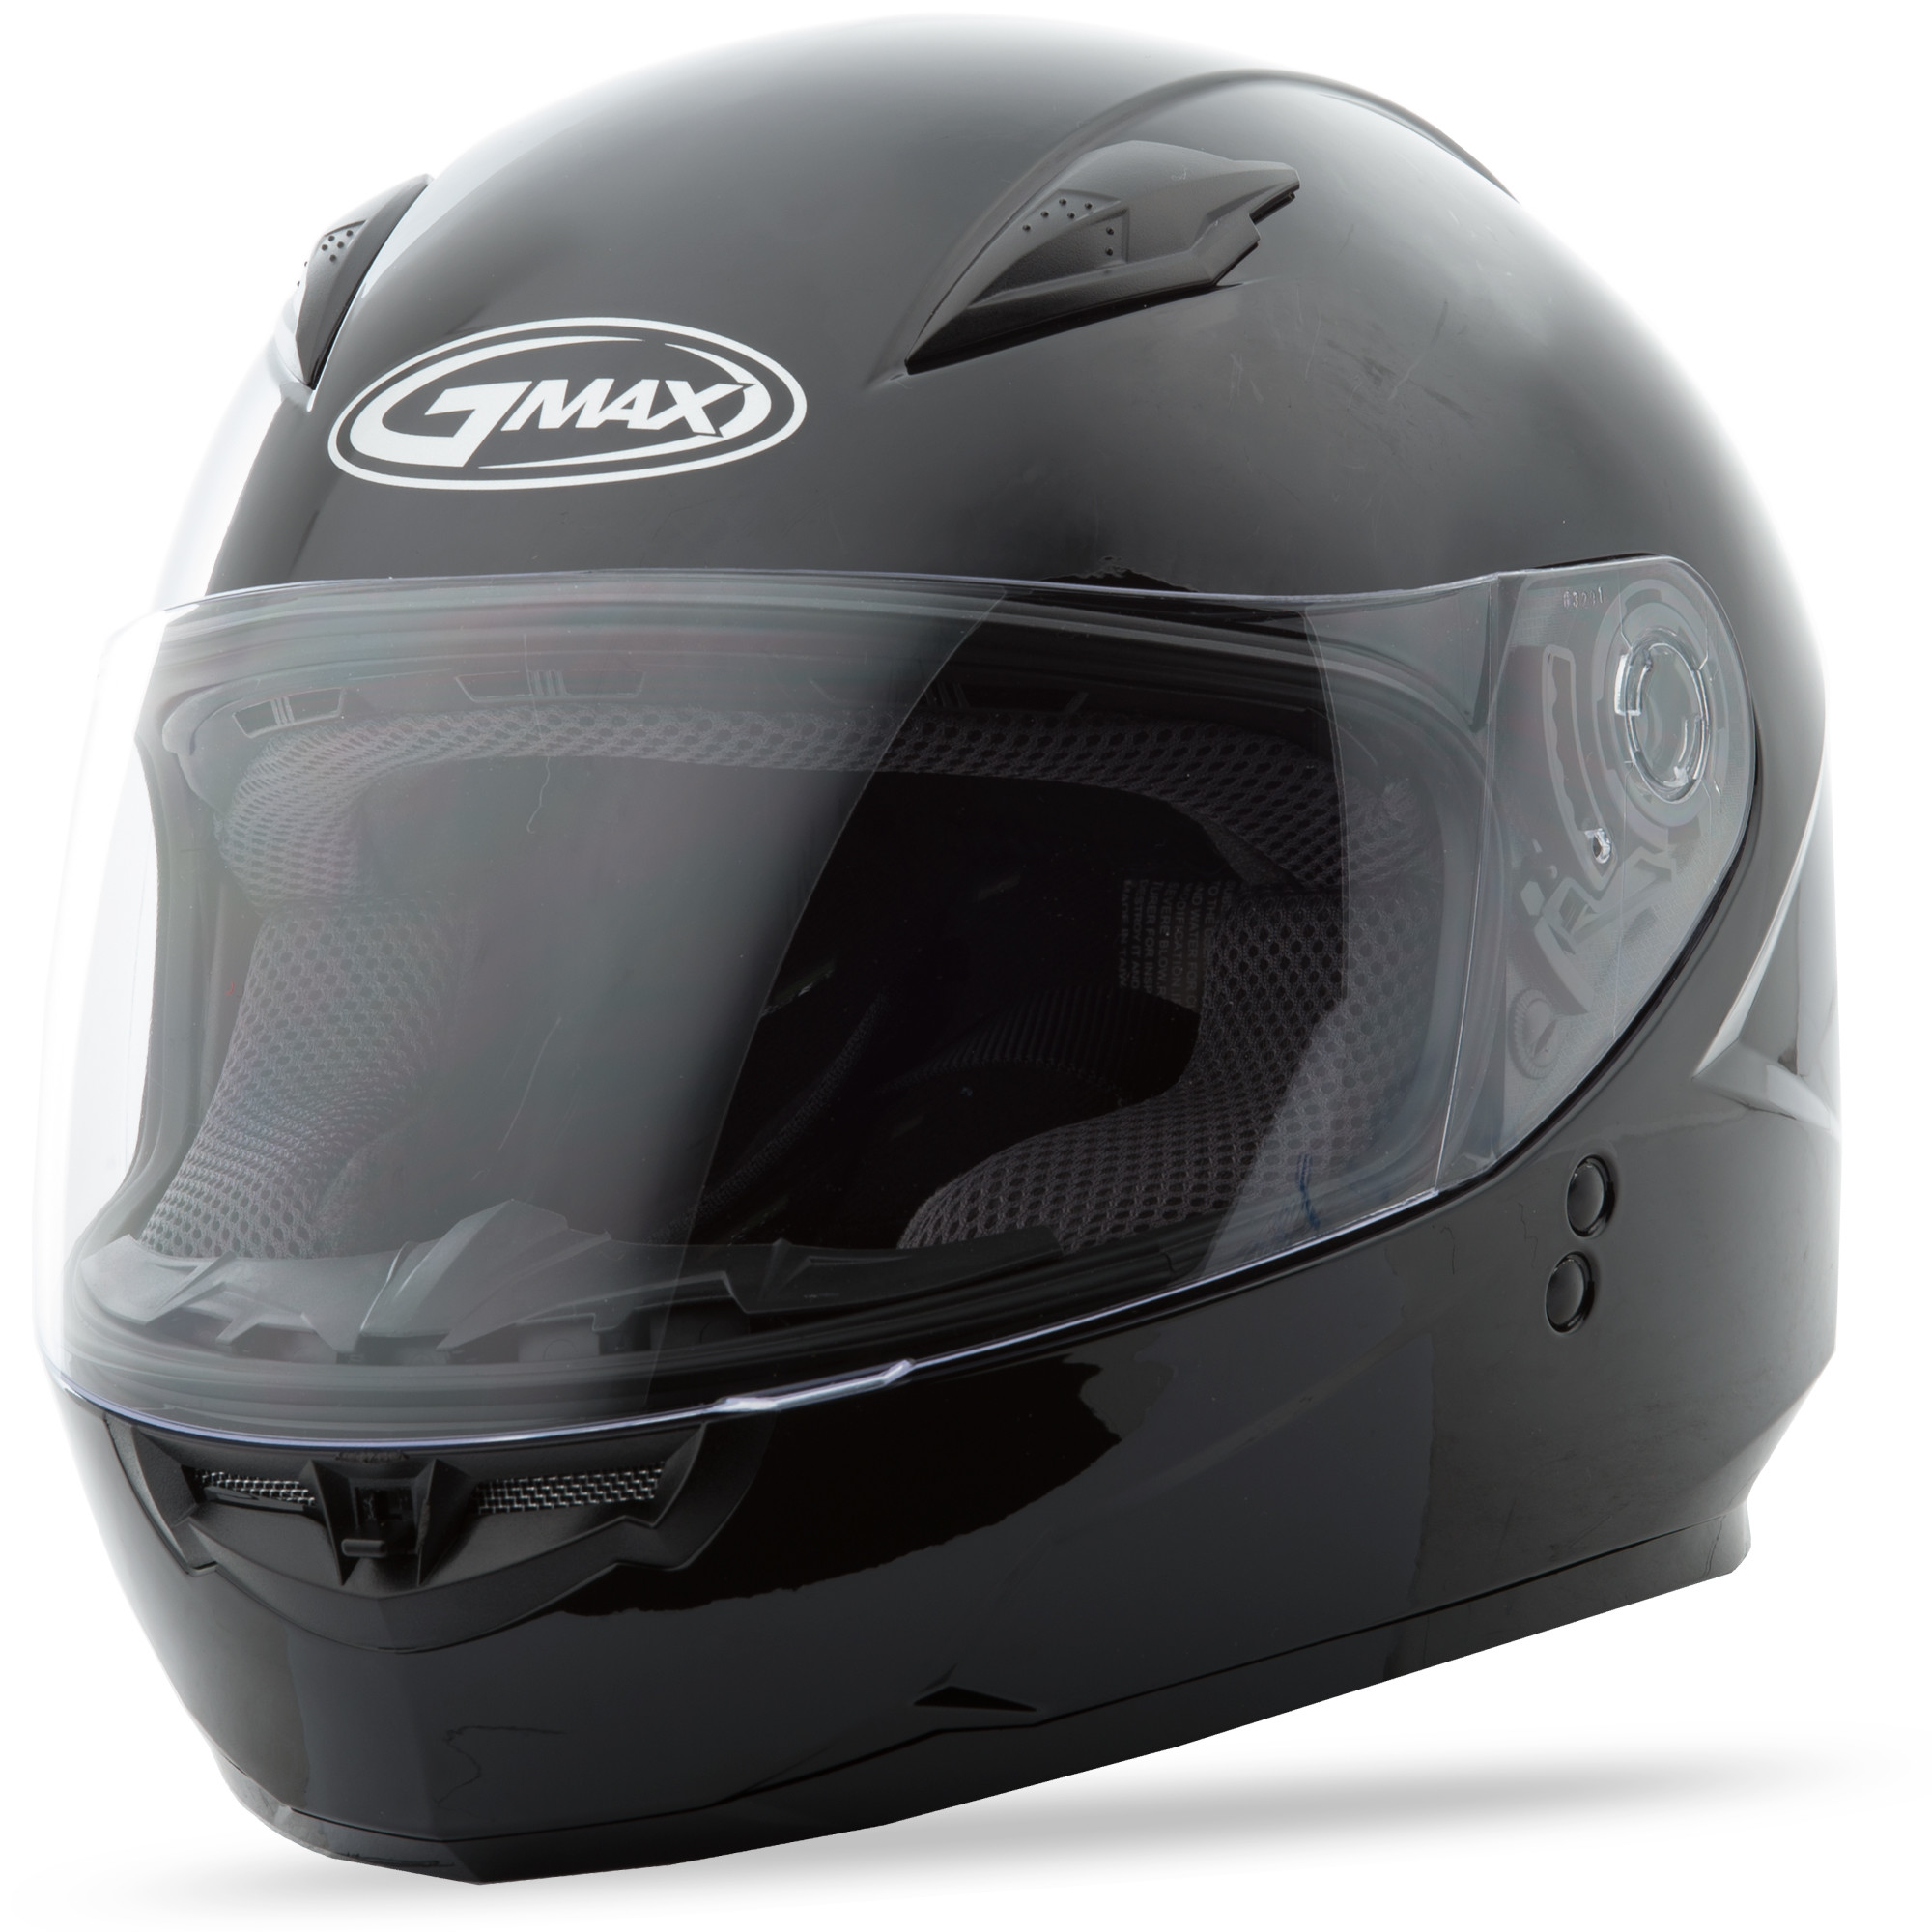 YOUTH GM-49Y Full-Face Helmet,  Black YS 72-4940YS